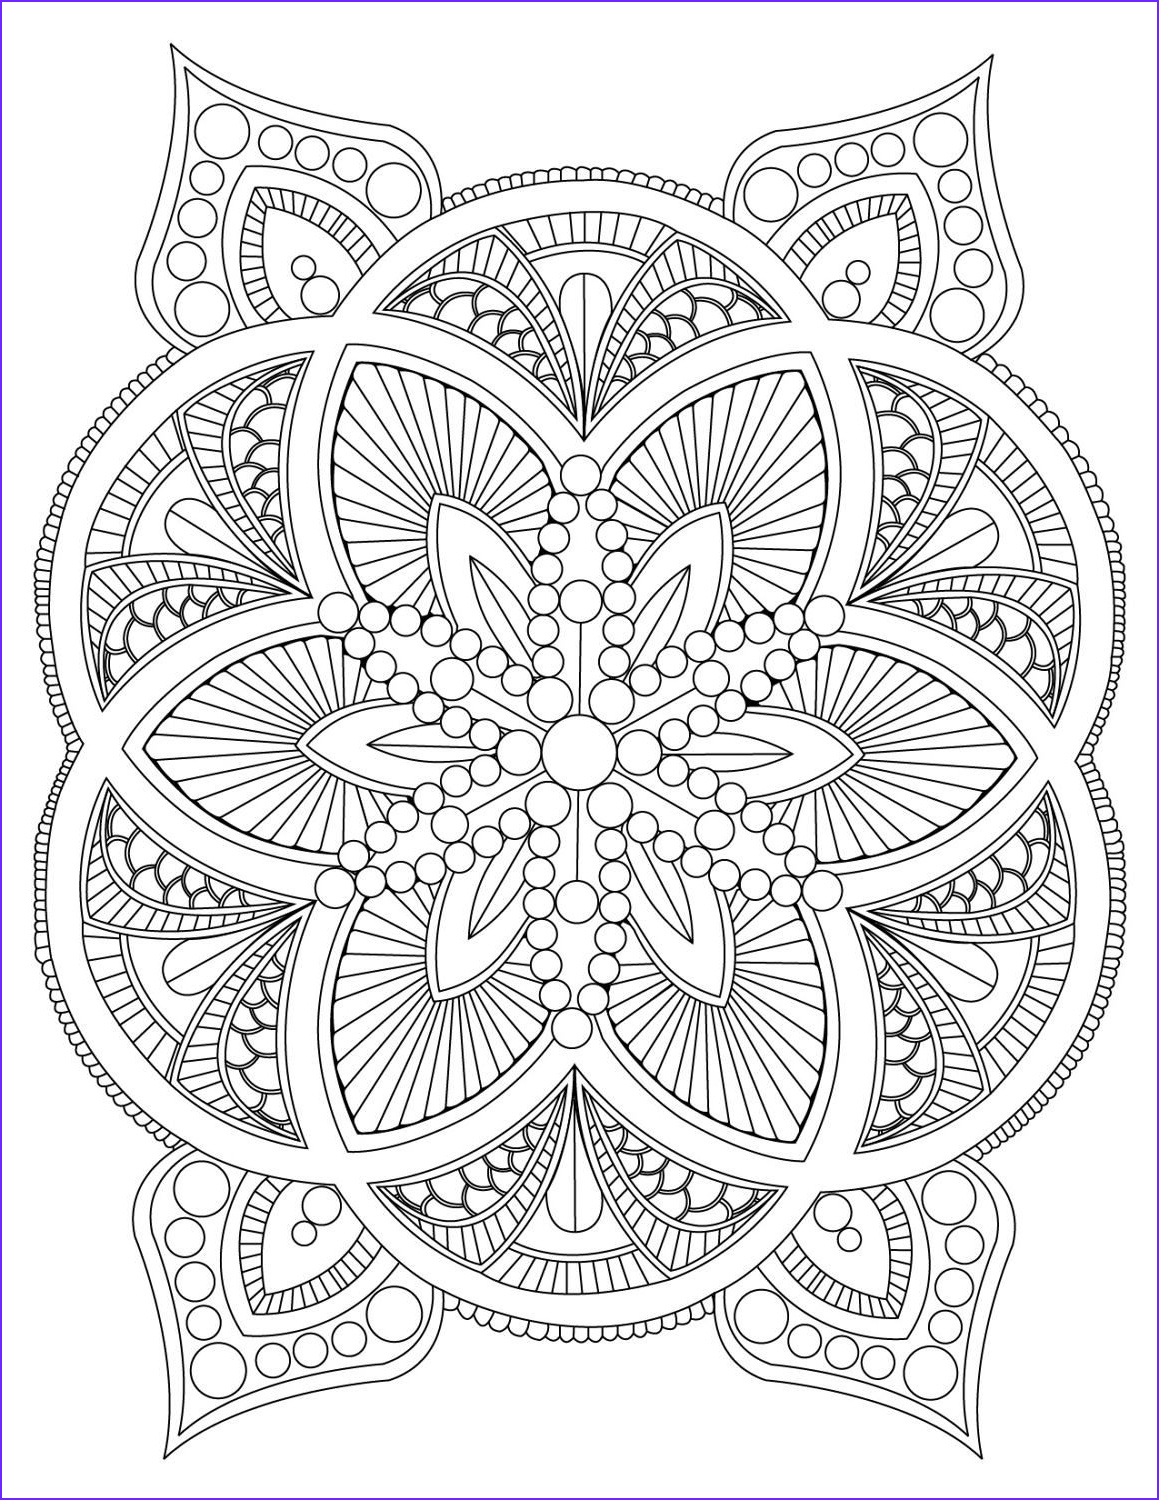 Adult Coloring Pages Mandala Best Of Images Abstract Mandala Coloring Page for Adults Digital Download